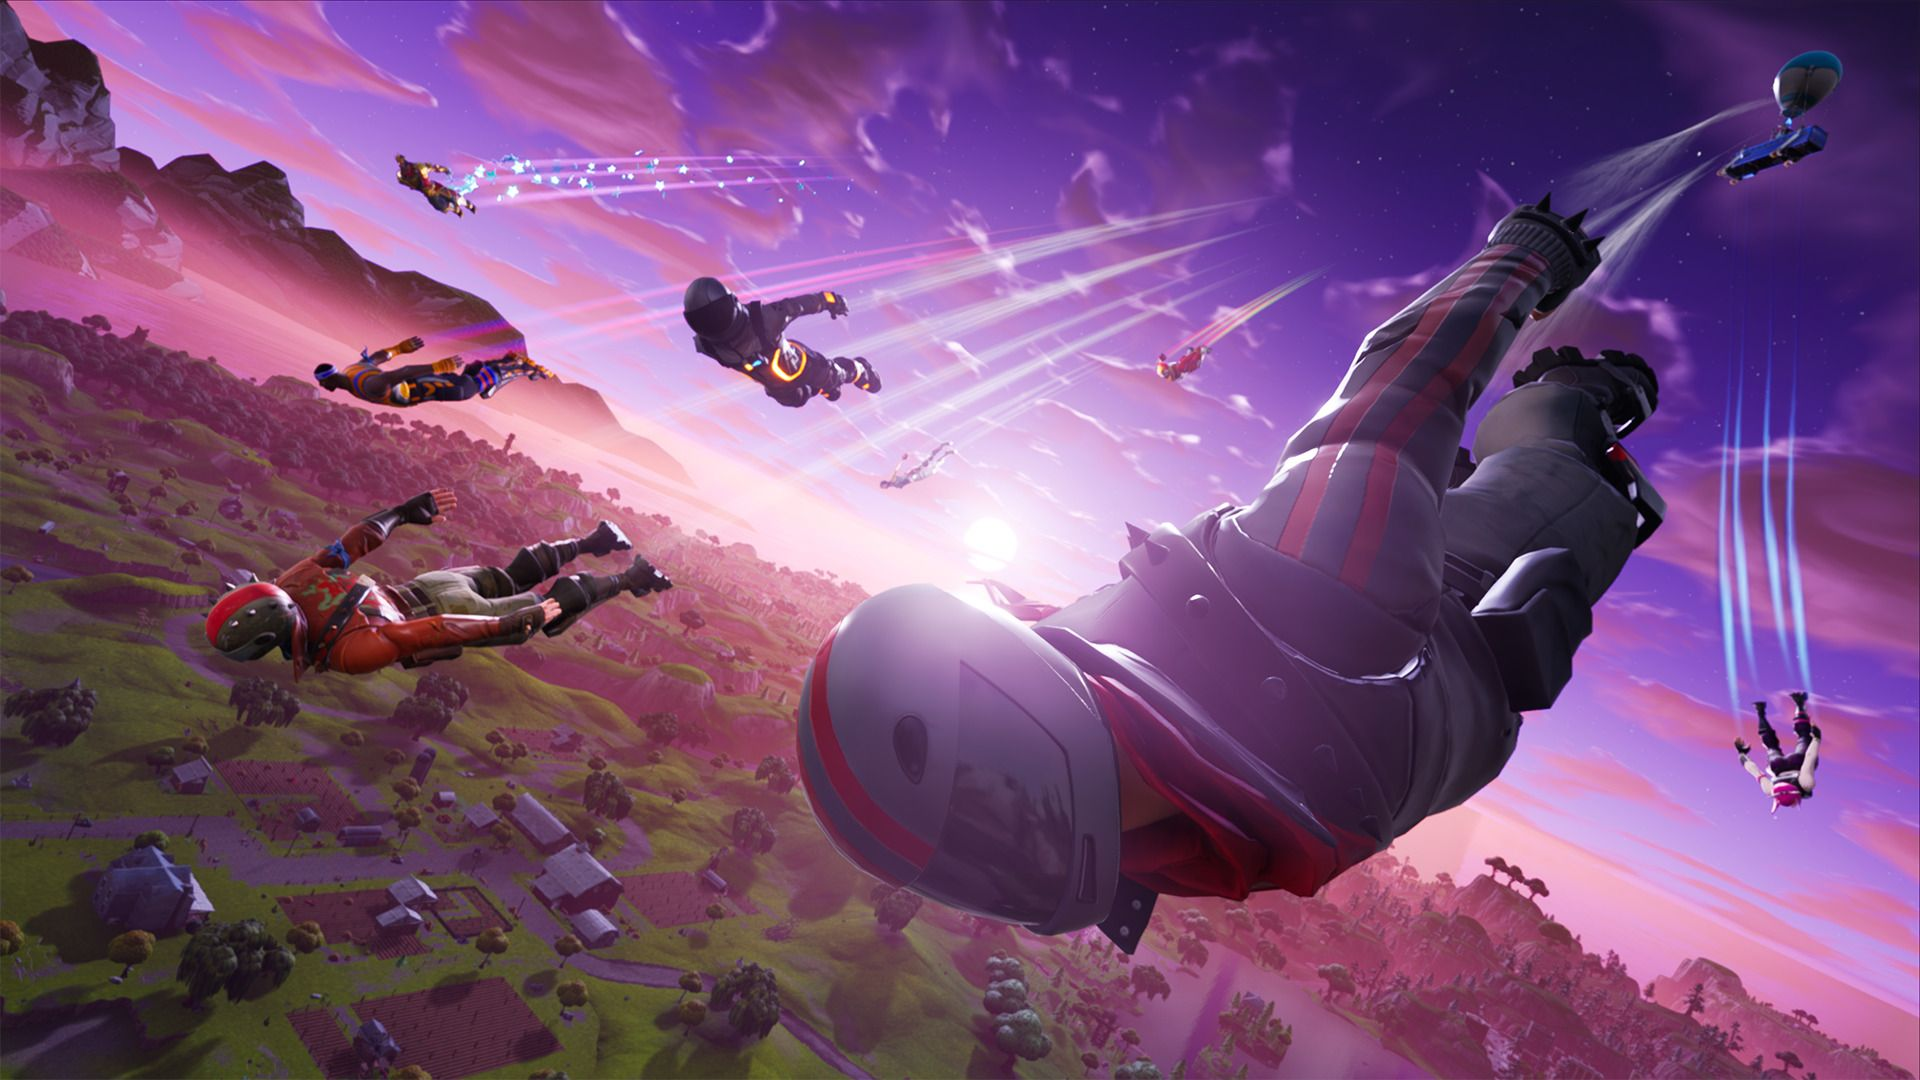 Duos Fortnite Wallpapers Top Free Duos Fortnite Backgrounds Wallpaperaccess